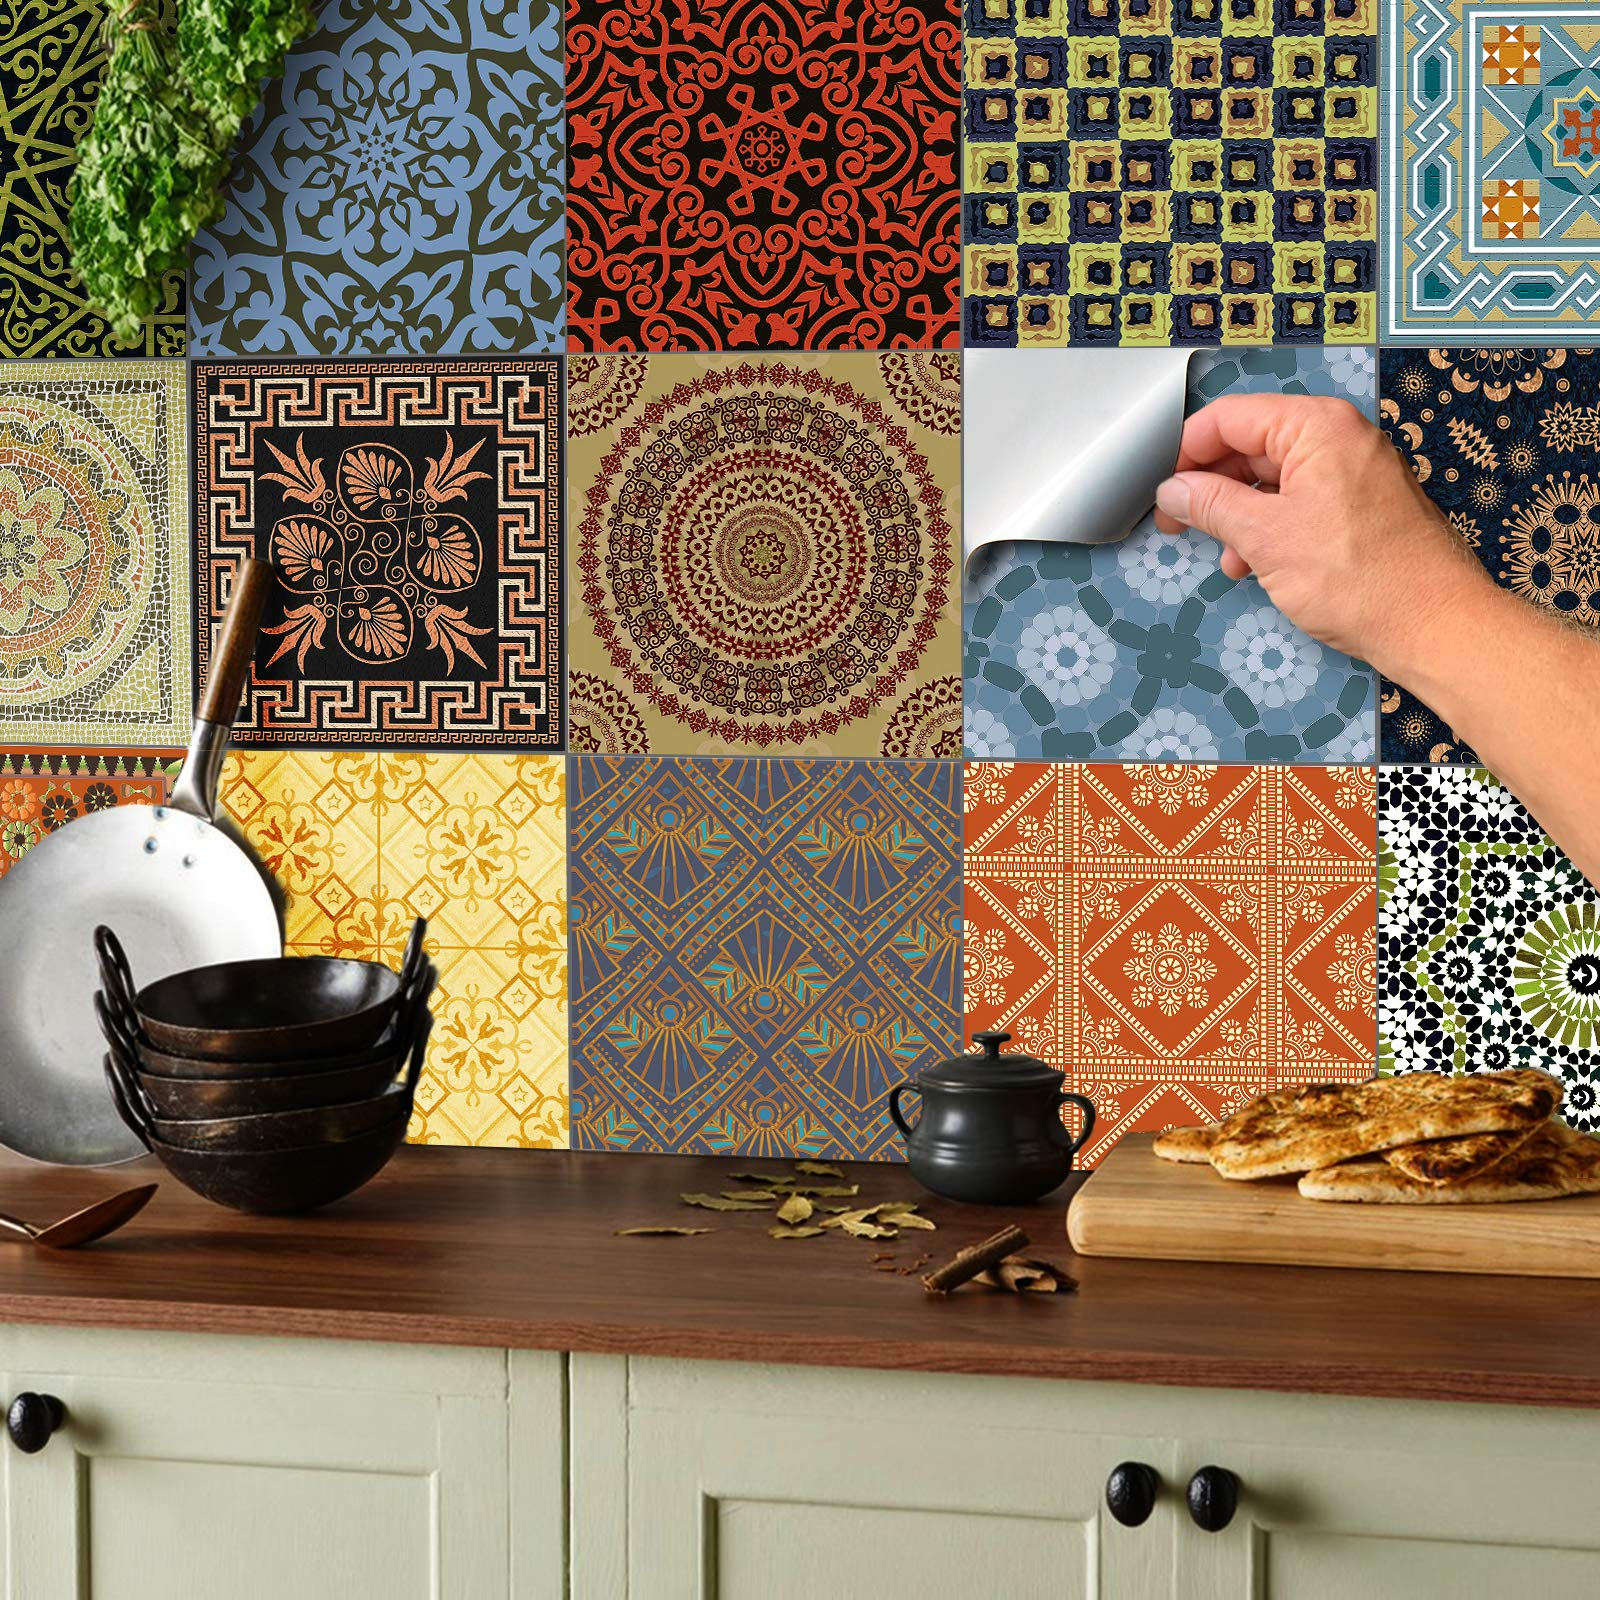 Transfers 150 x 150 mm Tile Stickers For Kitchen Bathroom* 15 x 15 cm